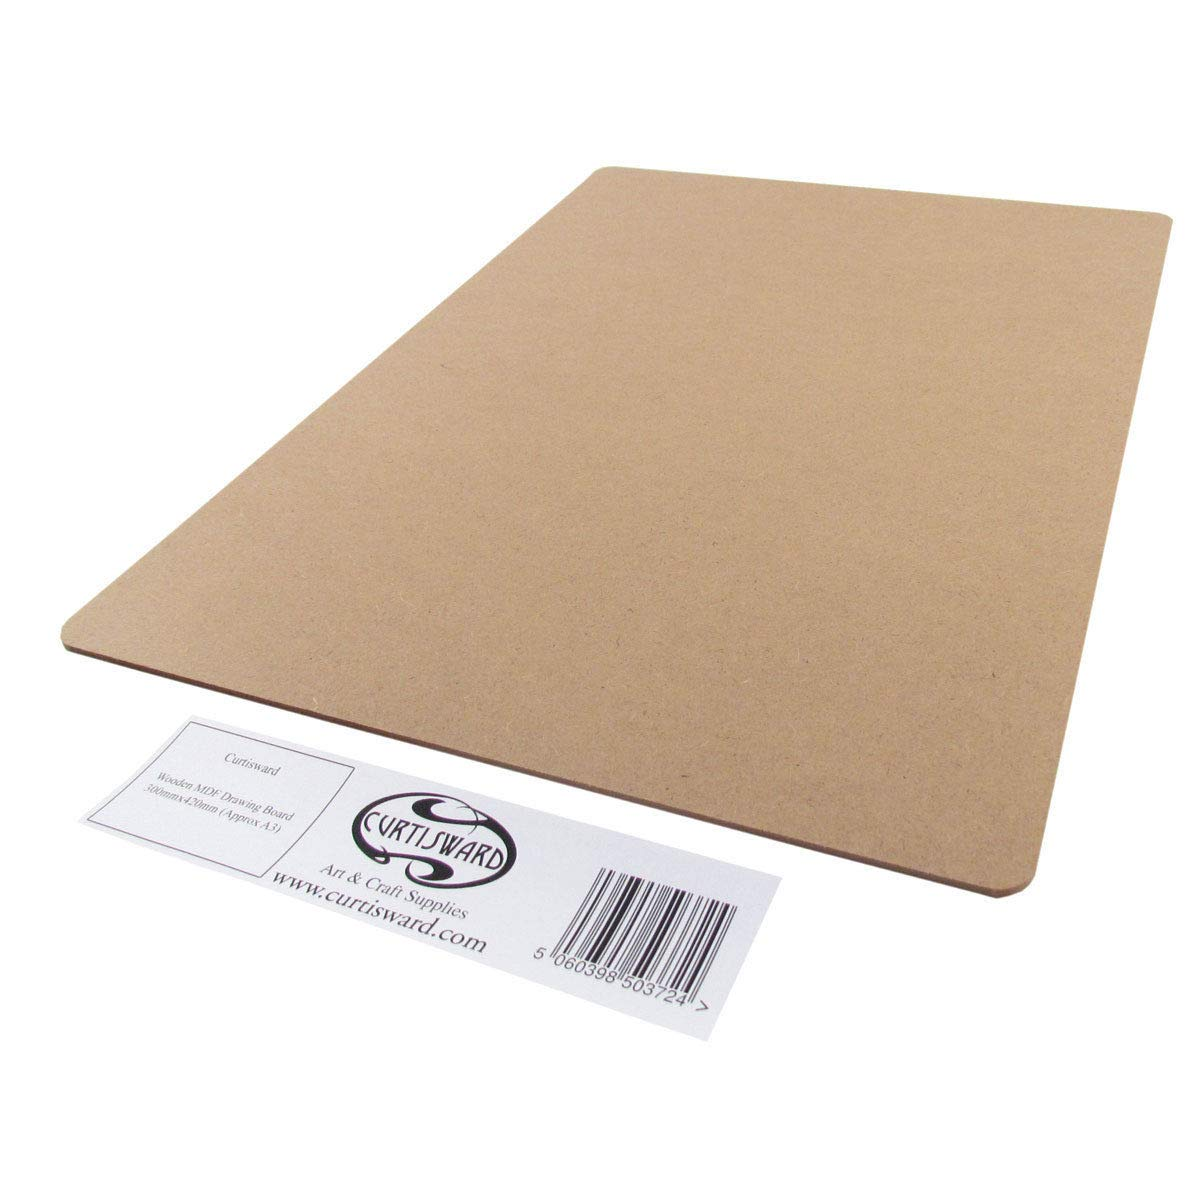 Curtisward Wooden MDF Drawing Board A3 (297 x 420mm). Arts & Craft Drawing Board